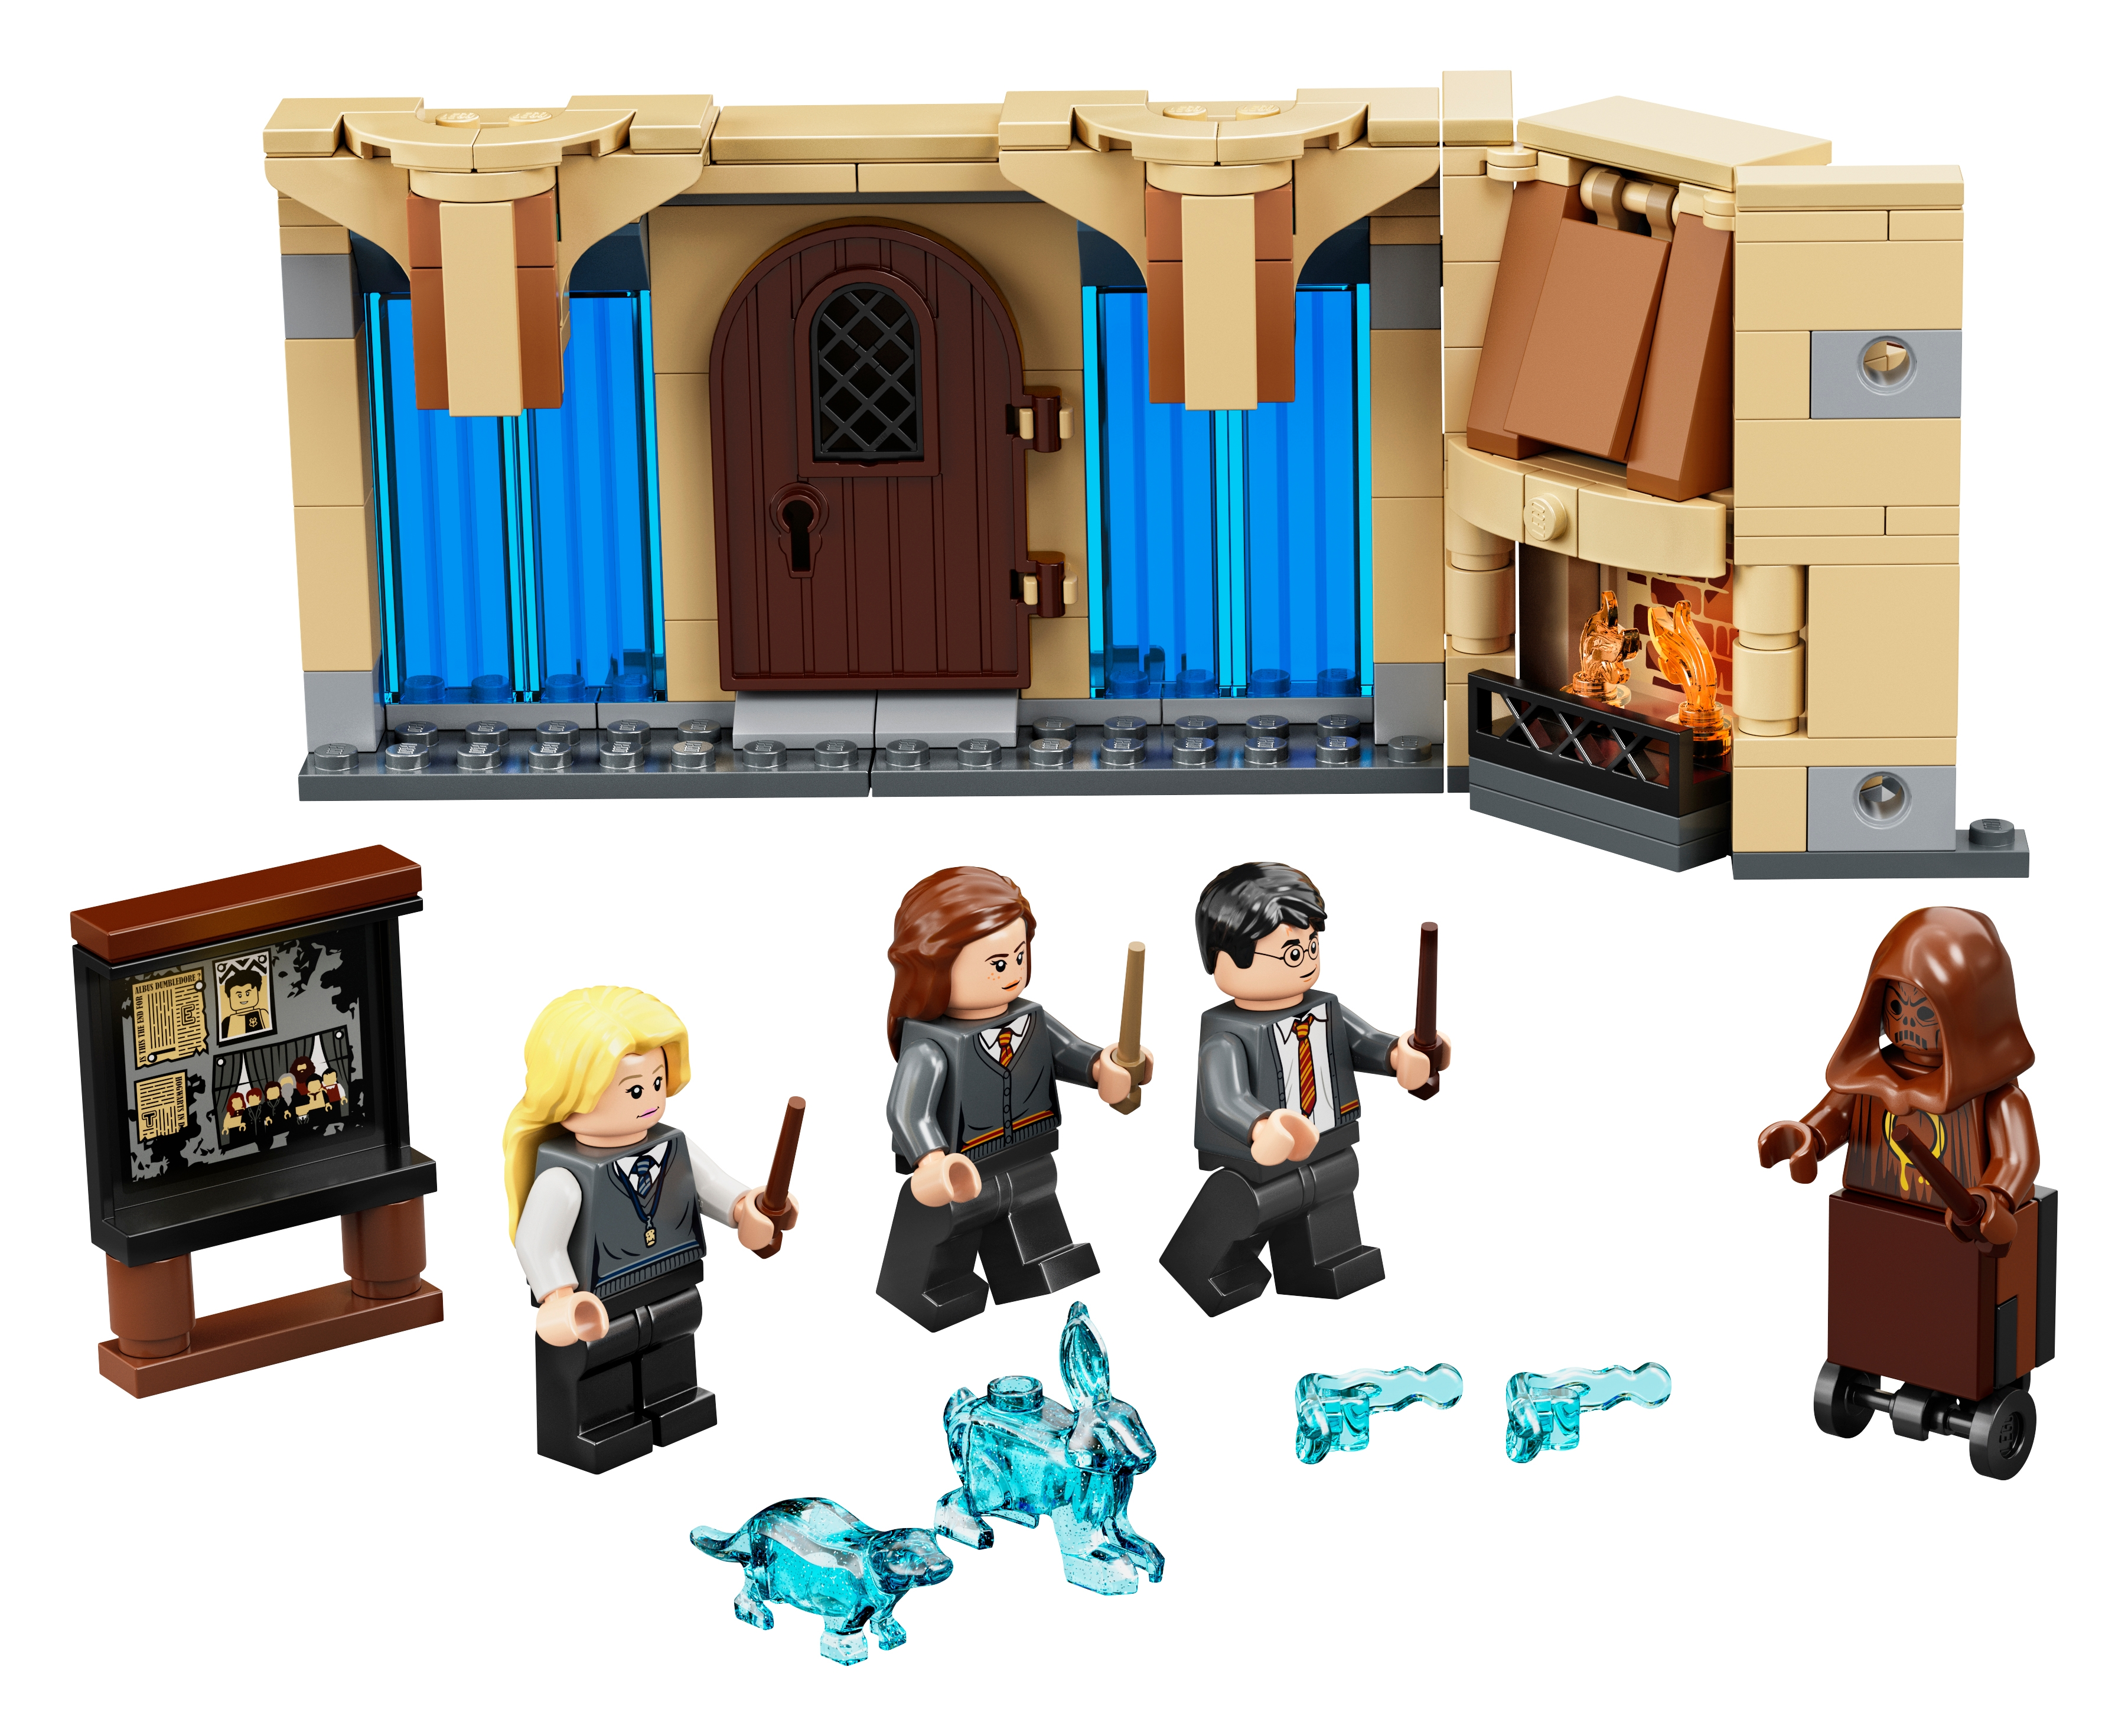 HARRY POTTER PLAY SET FIGURES COMMON ROOM ROOM OF REQUIREMENT RARE YOU CHOOSE